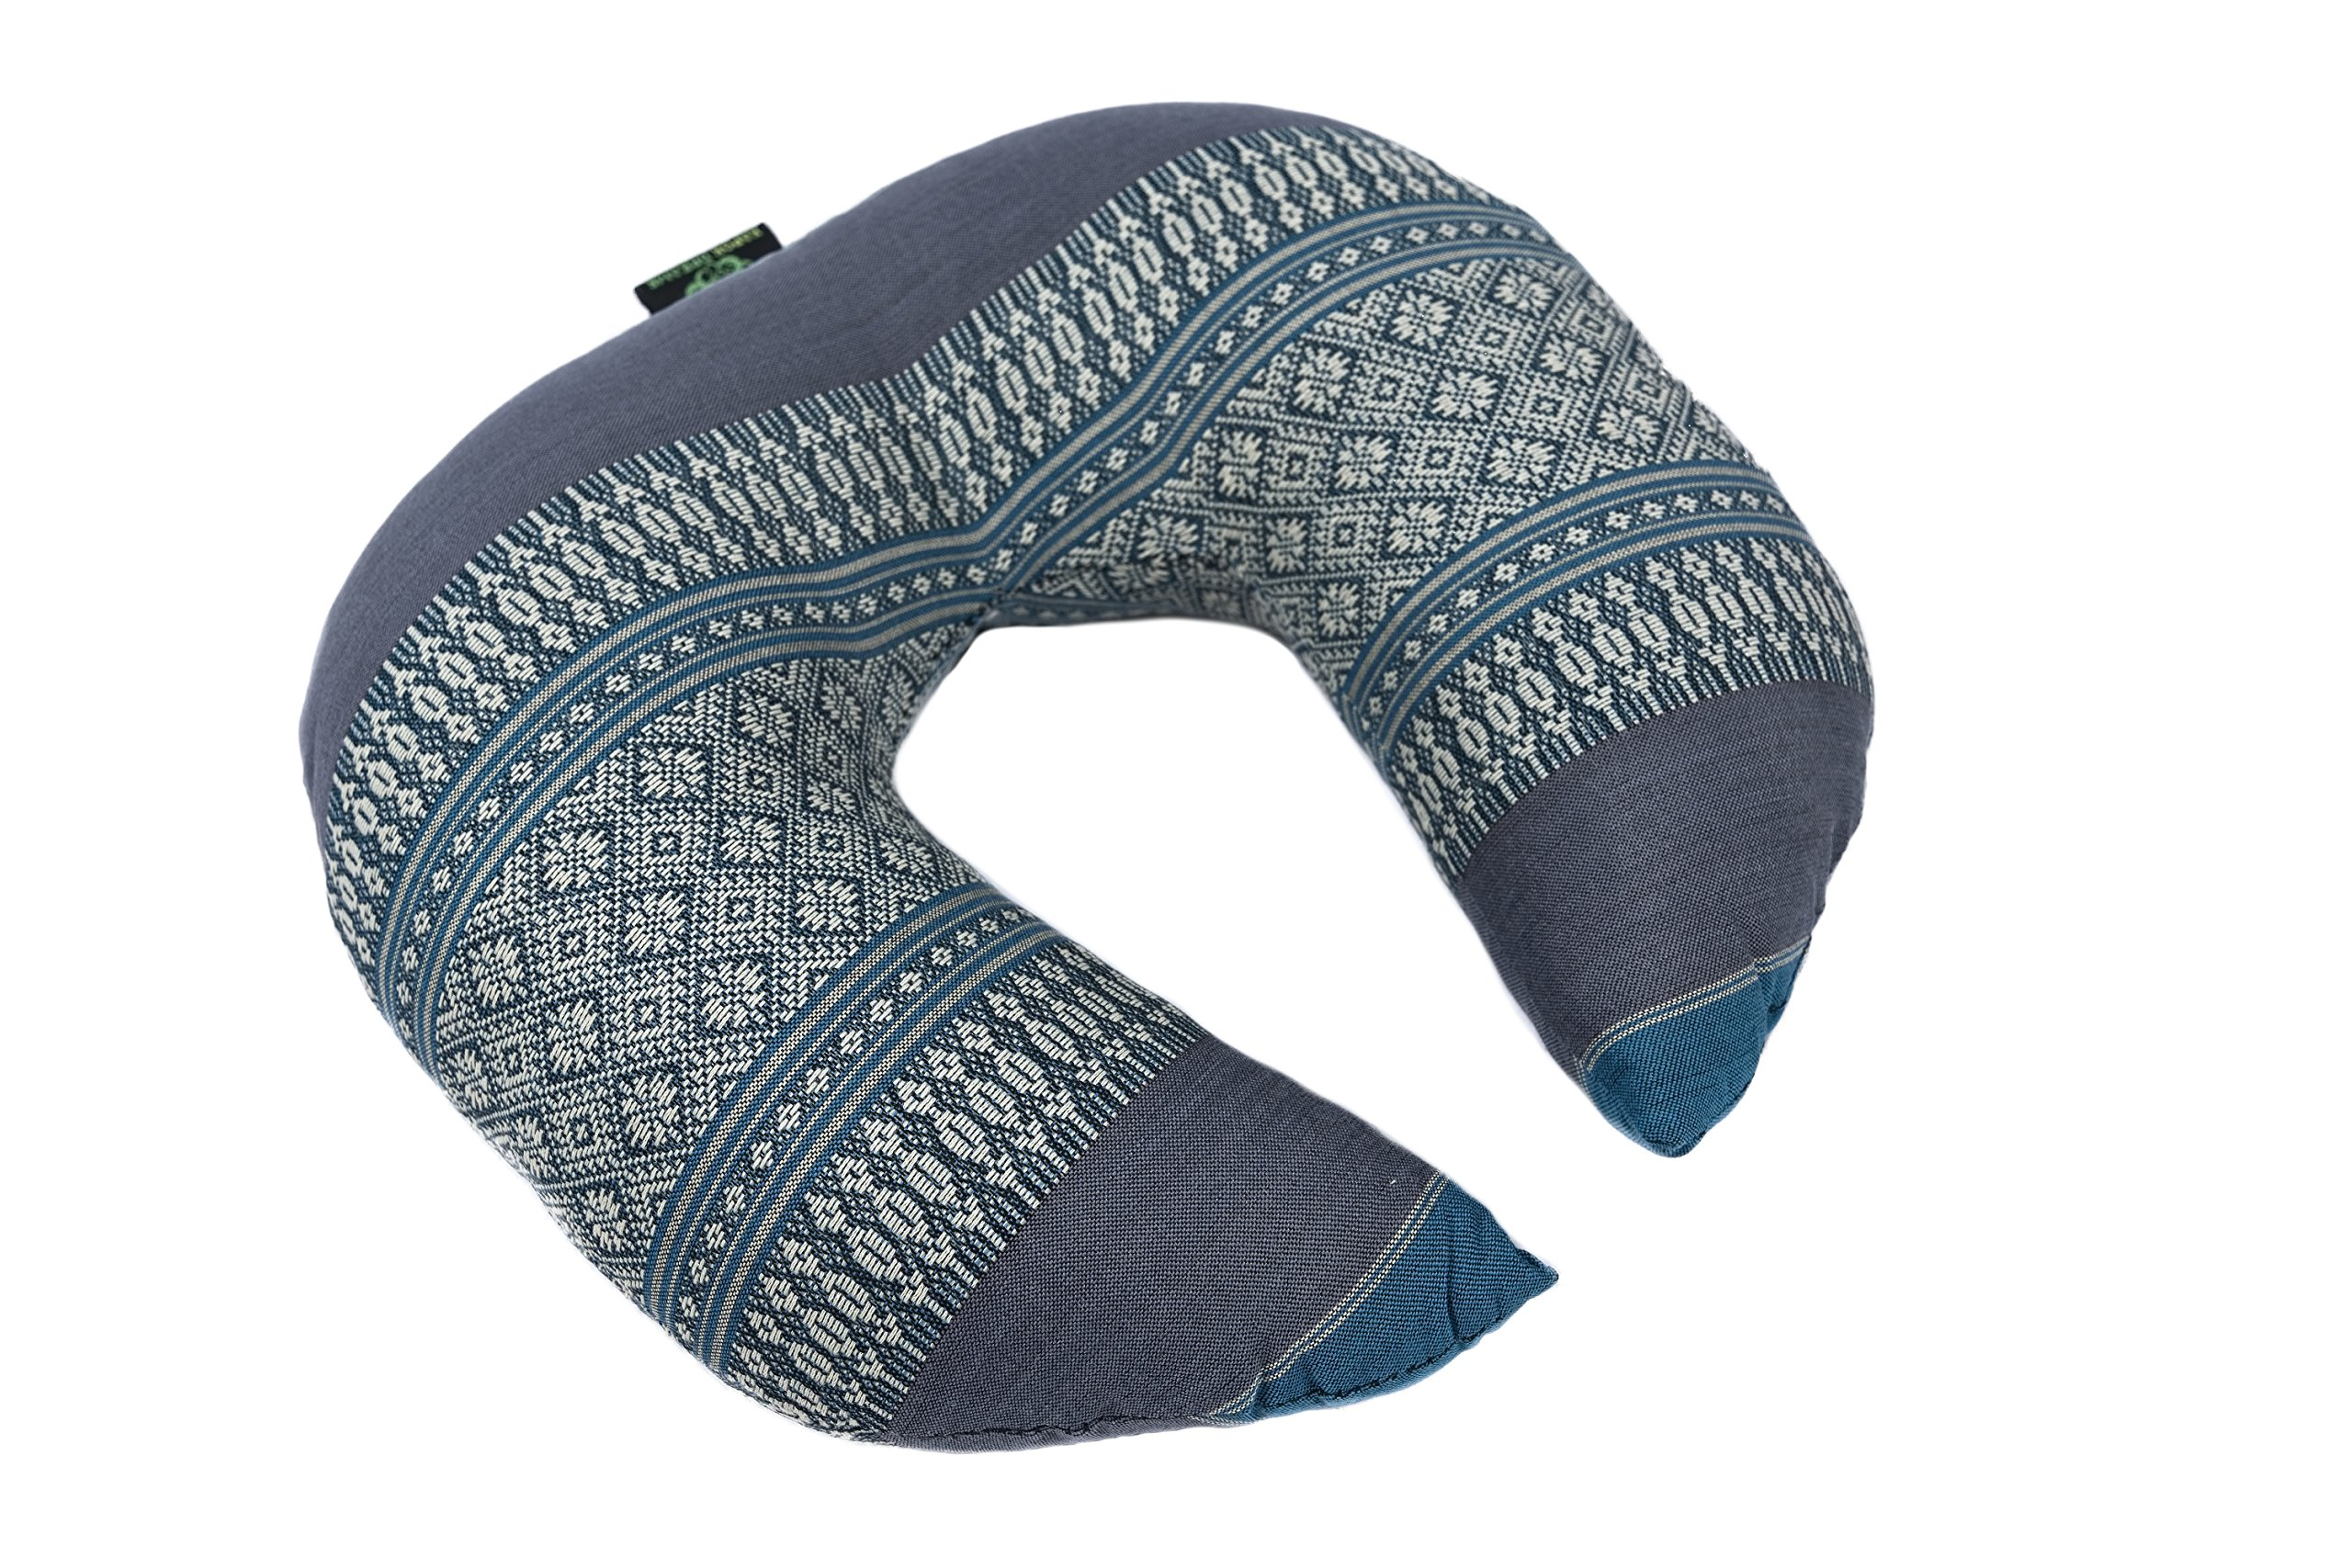 Face Cradle Cushion, 12''x11''x4'', Massage Pillow 100% Kapok Filled Head Rest Blue Tones Thai Design.Neck Cushion